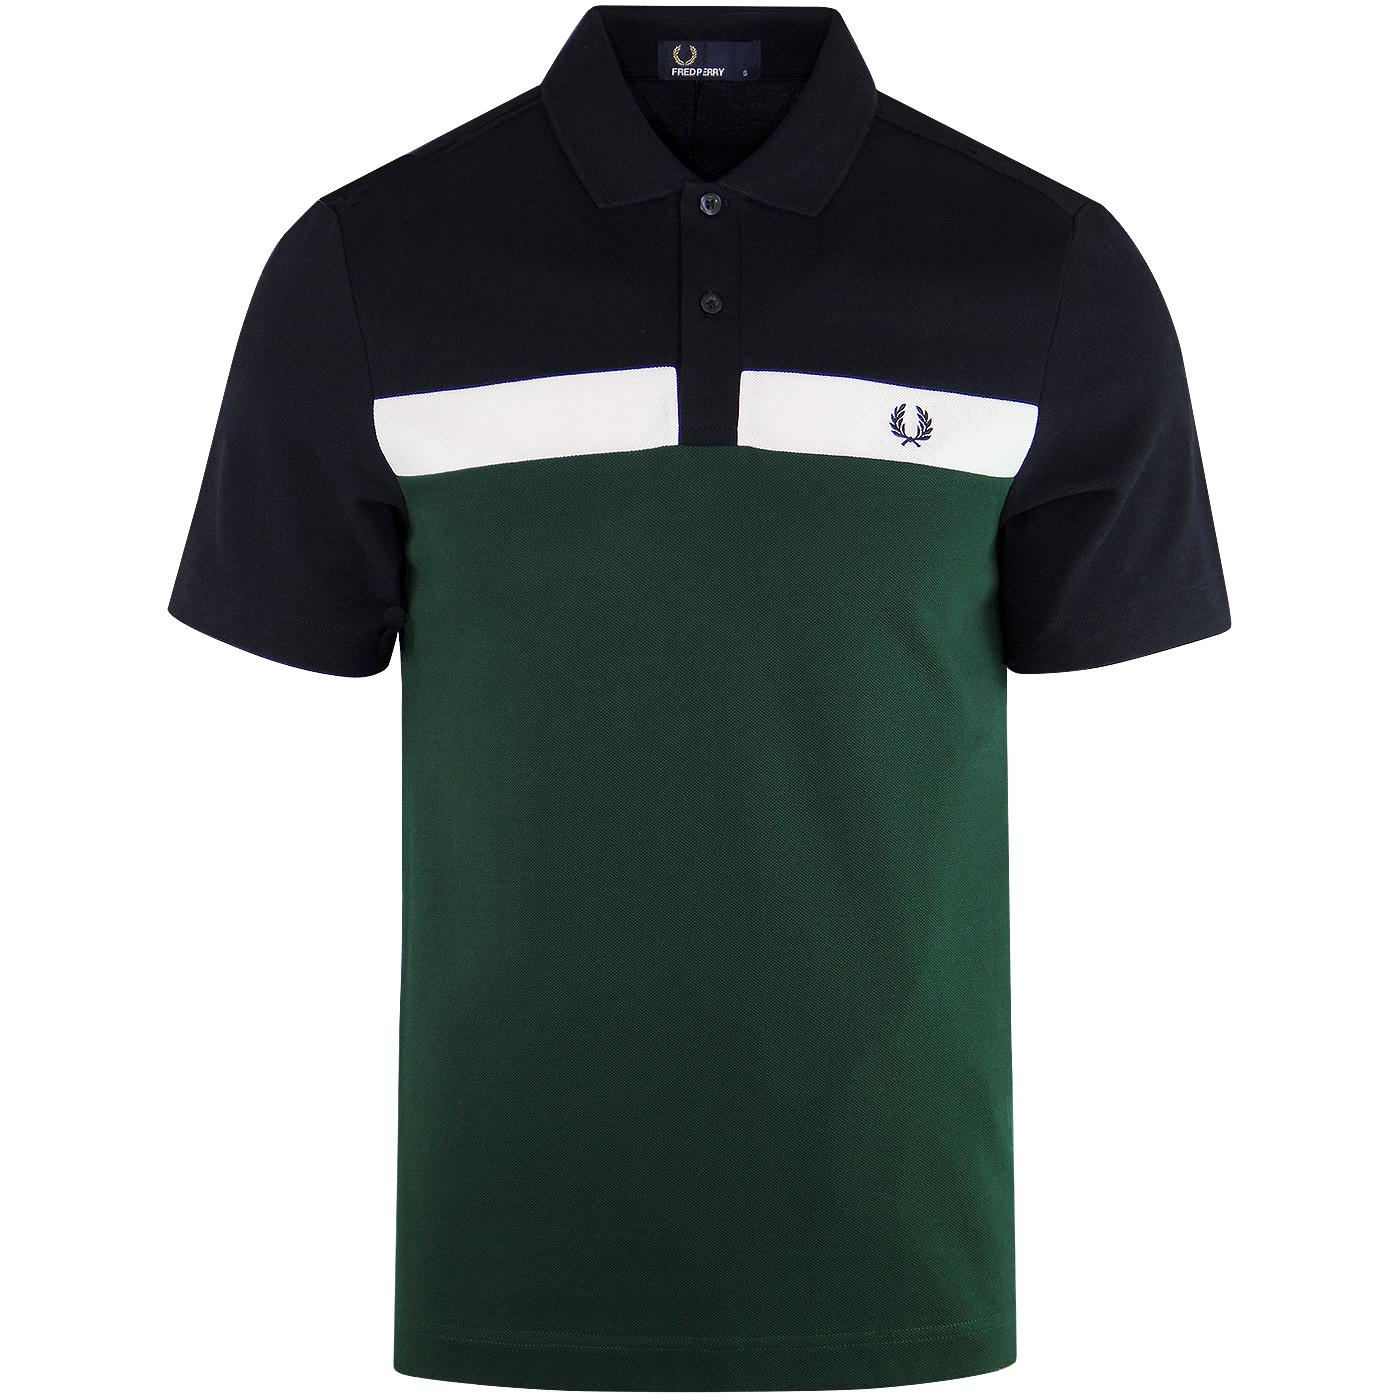 FRED PERRY Mod Contrast Panel Pique Polo Shirt IVY